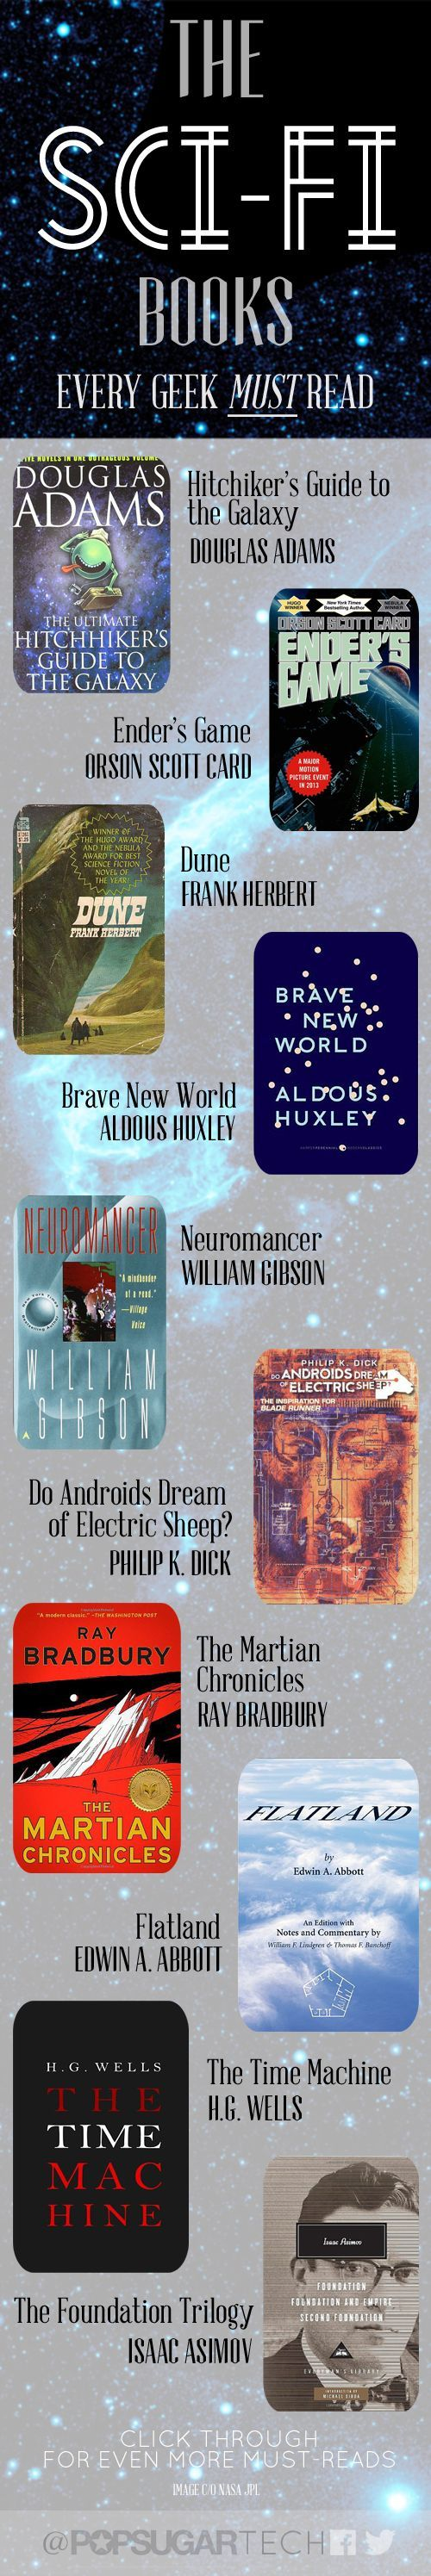 Your MOST ESSENTIAL science-fiction reading list! The sci-fi books every geek must read.